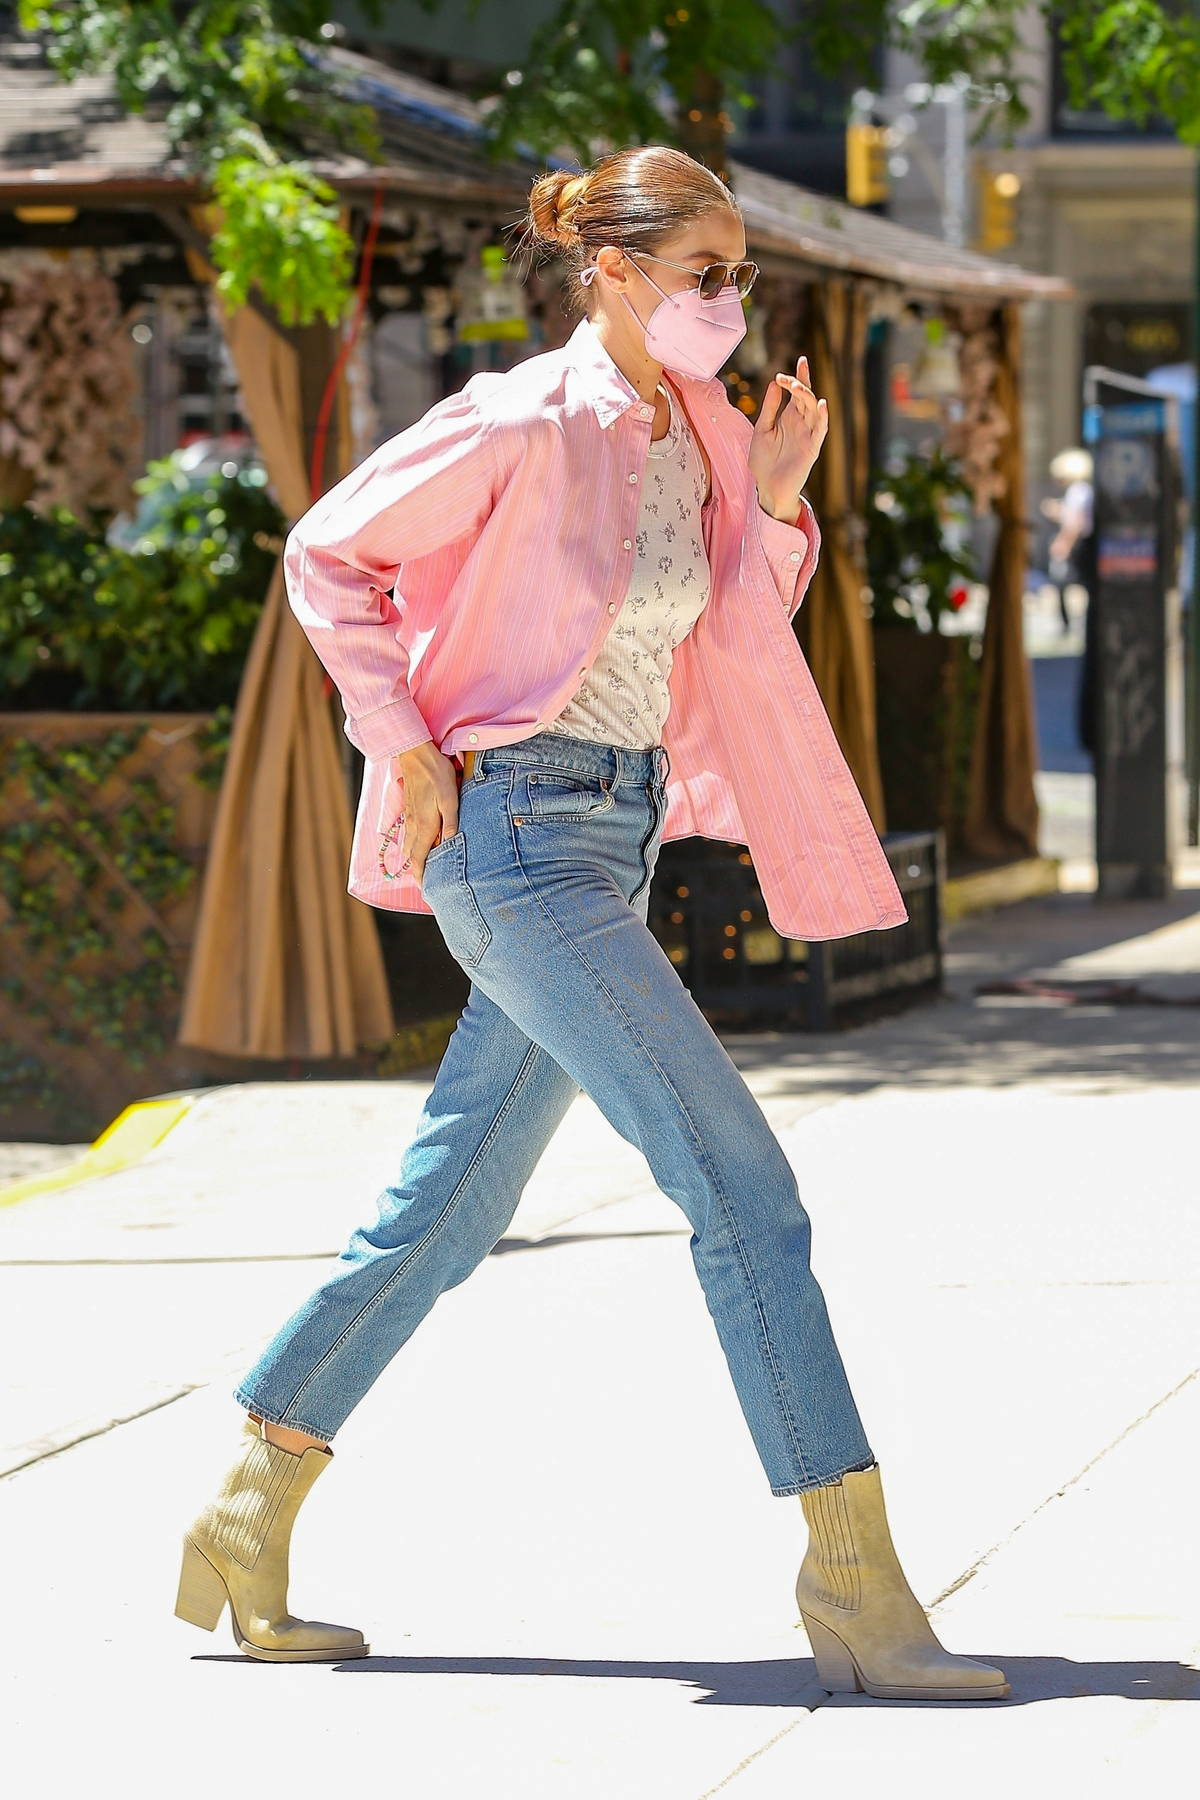 Gigi Hadid looks fab in an unbuttoned pink shirt and blue jeans as she arrives back at her apartment in New York City